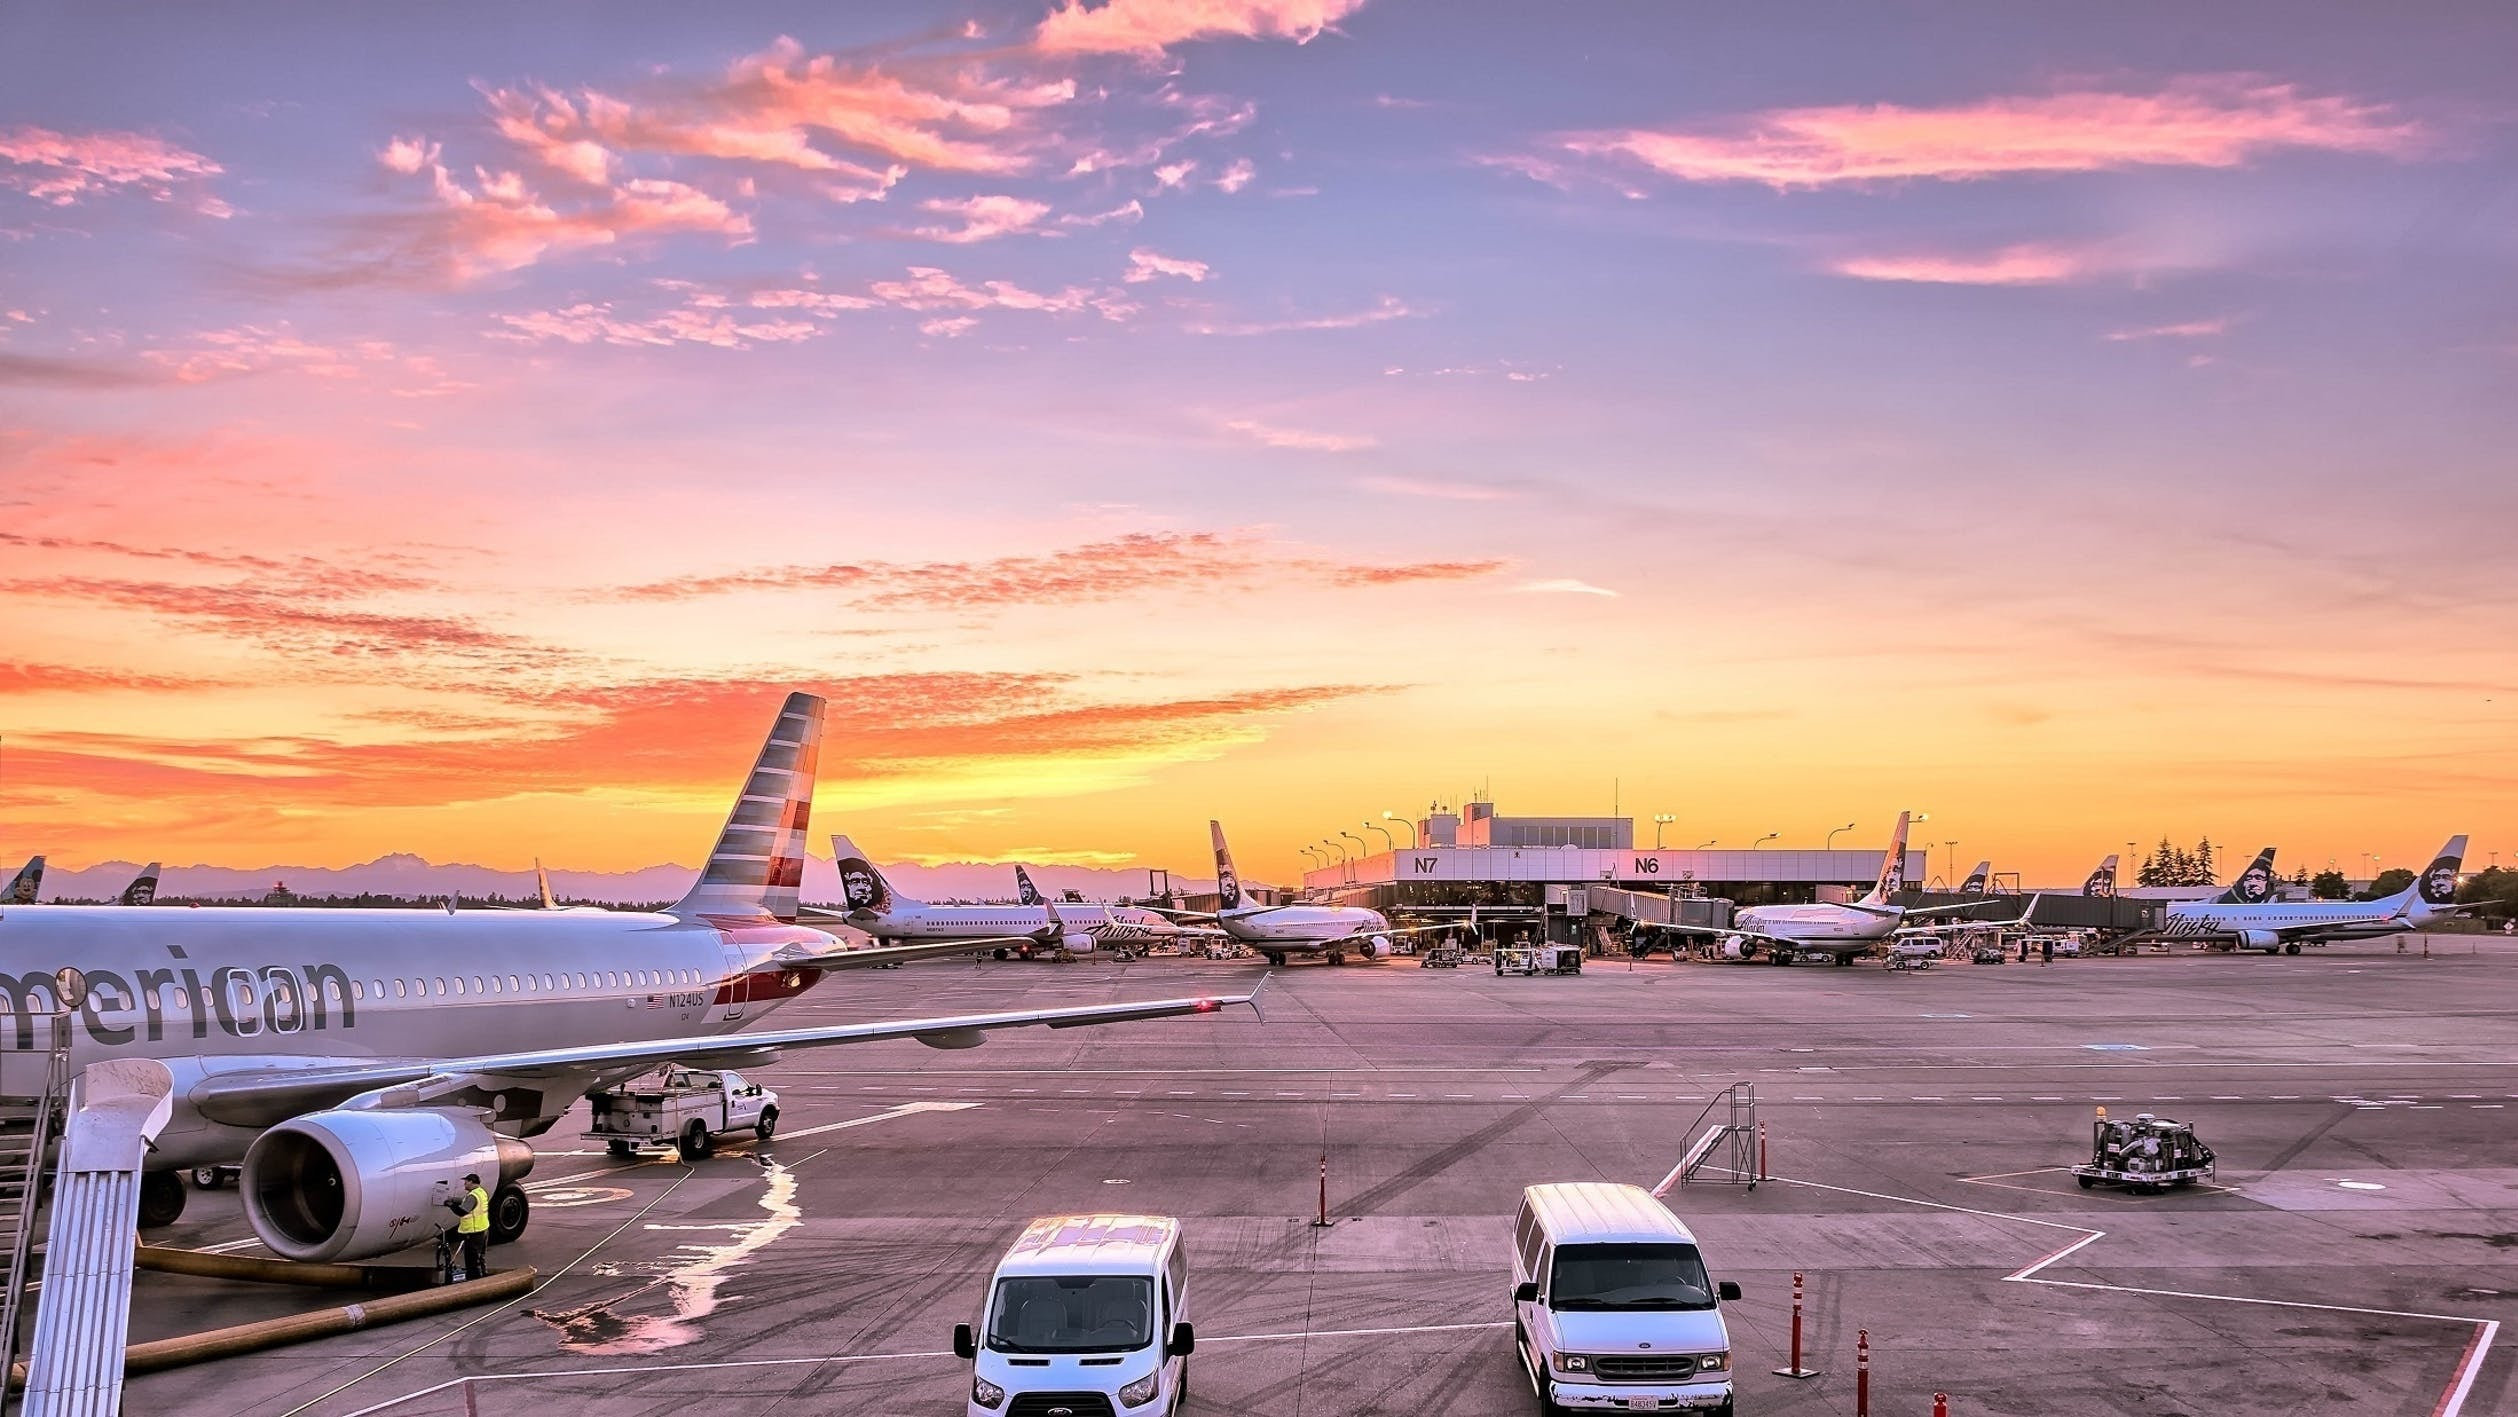 The Best Time To Buy Flights In 2019, Based On 917 Million Airfares